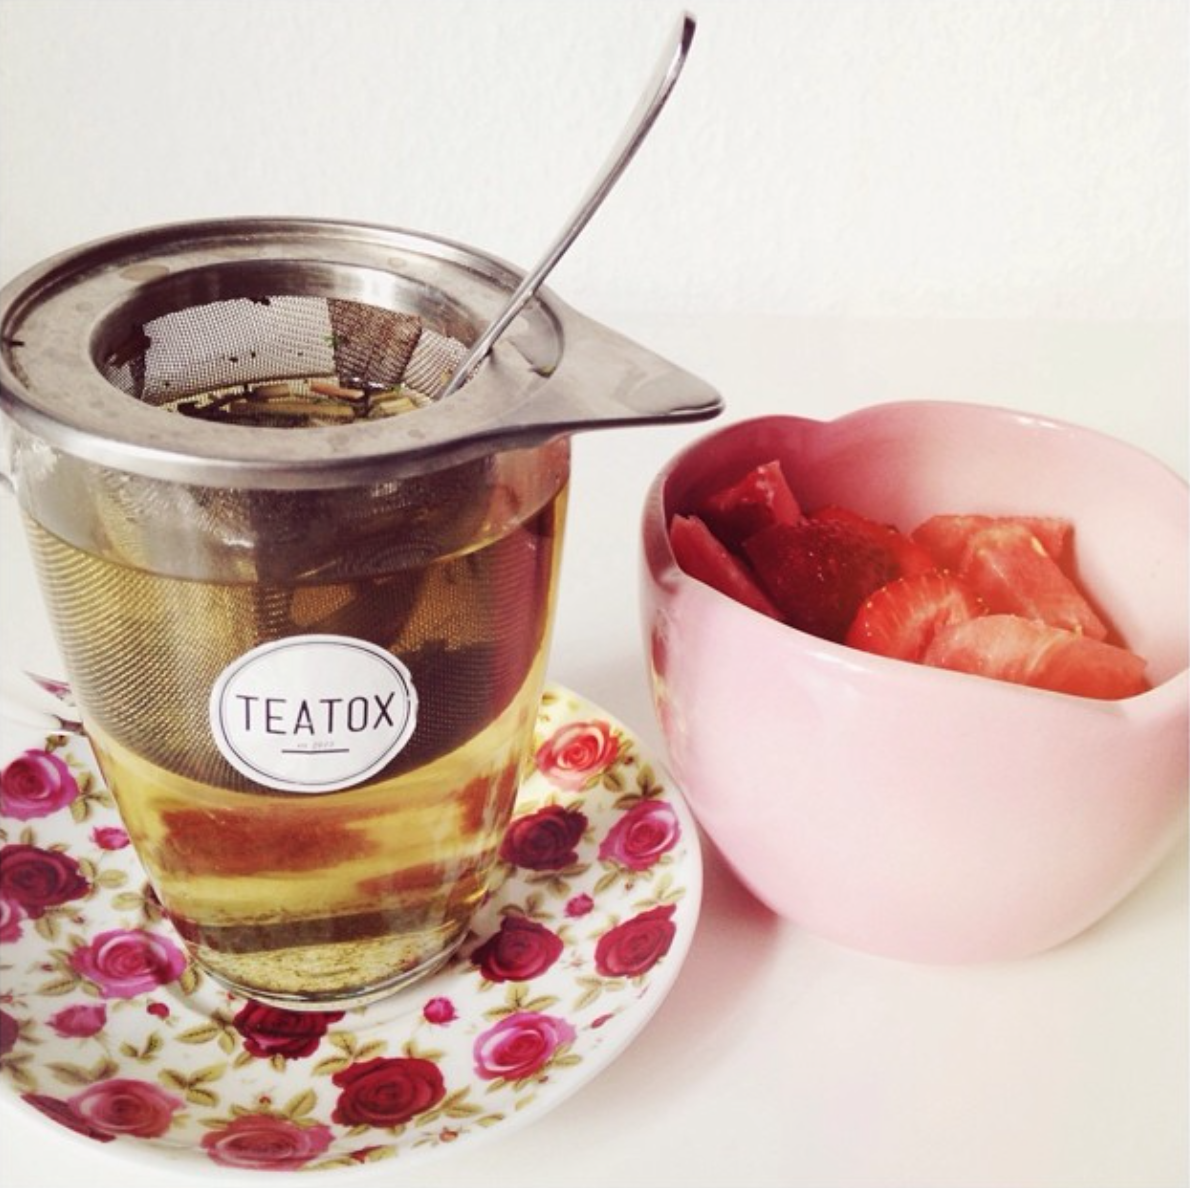 Tea, Teatox, Strawberries